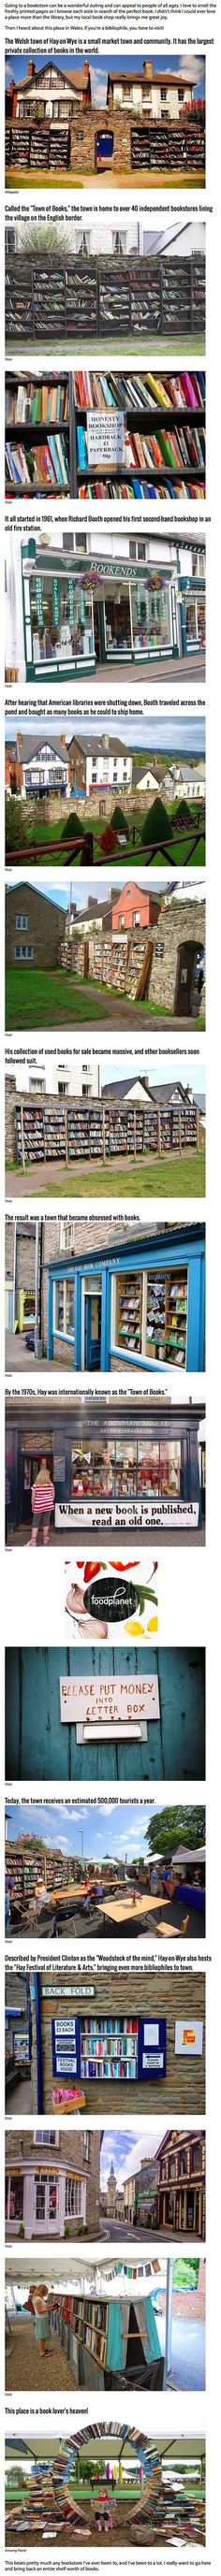 """""""Town of Books"""" - Hay-on-Wye. do i save this to my books board or my future travel board! I Love Books, Good Books, Books To Read, Reading Books, Oh The Places You'll Go, Places To Travel, Places To Visit, Just Dream, To Infinity And Beyond"""